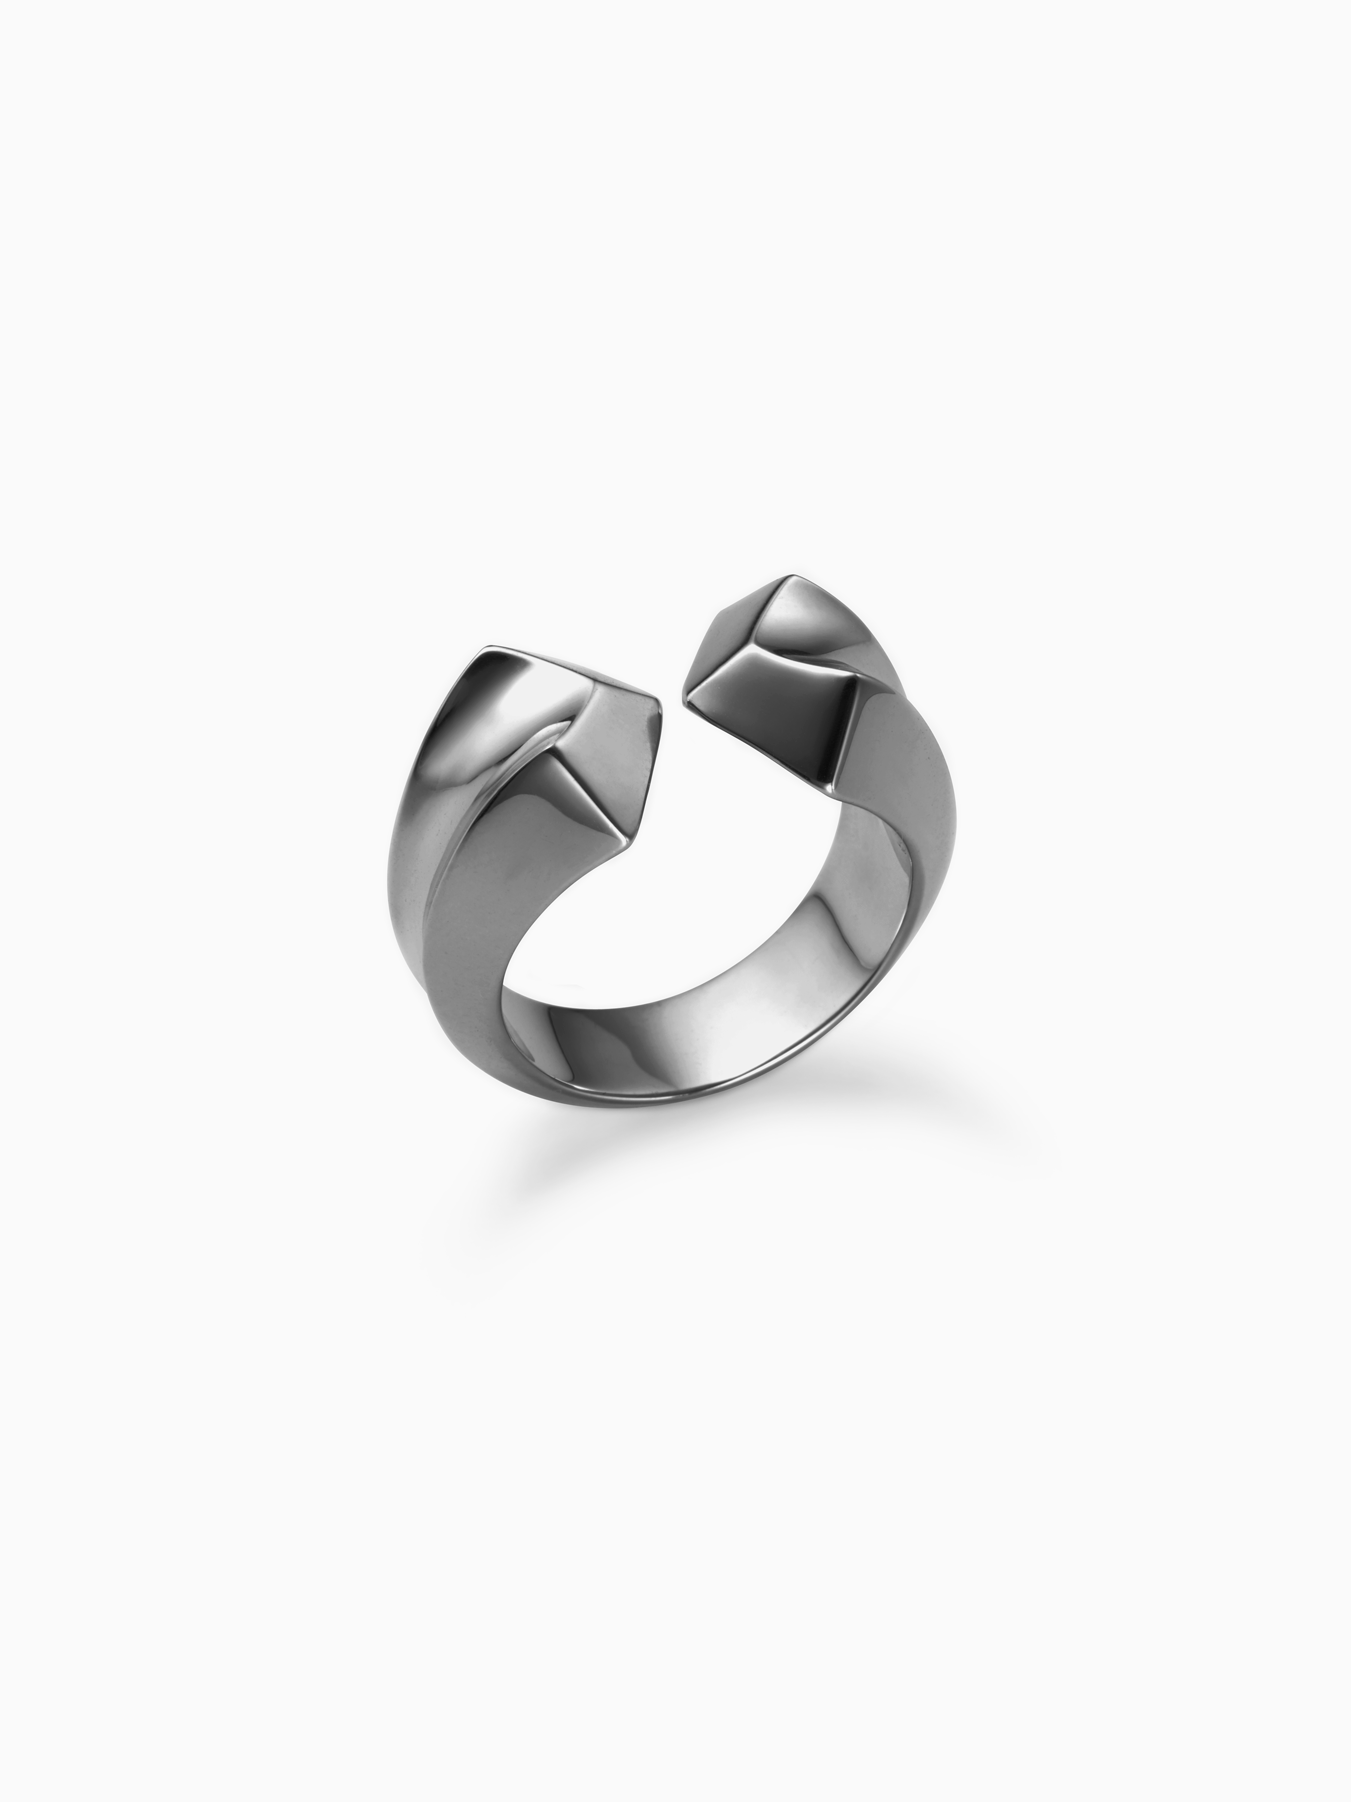 Crious L / Ring / Sterling Silver